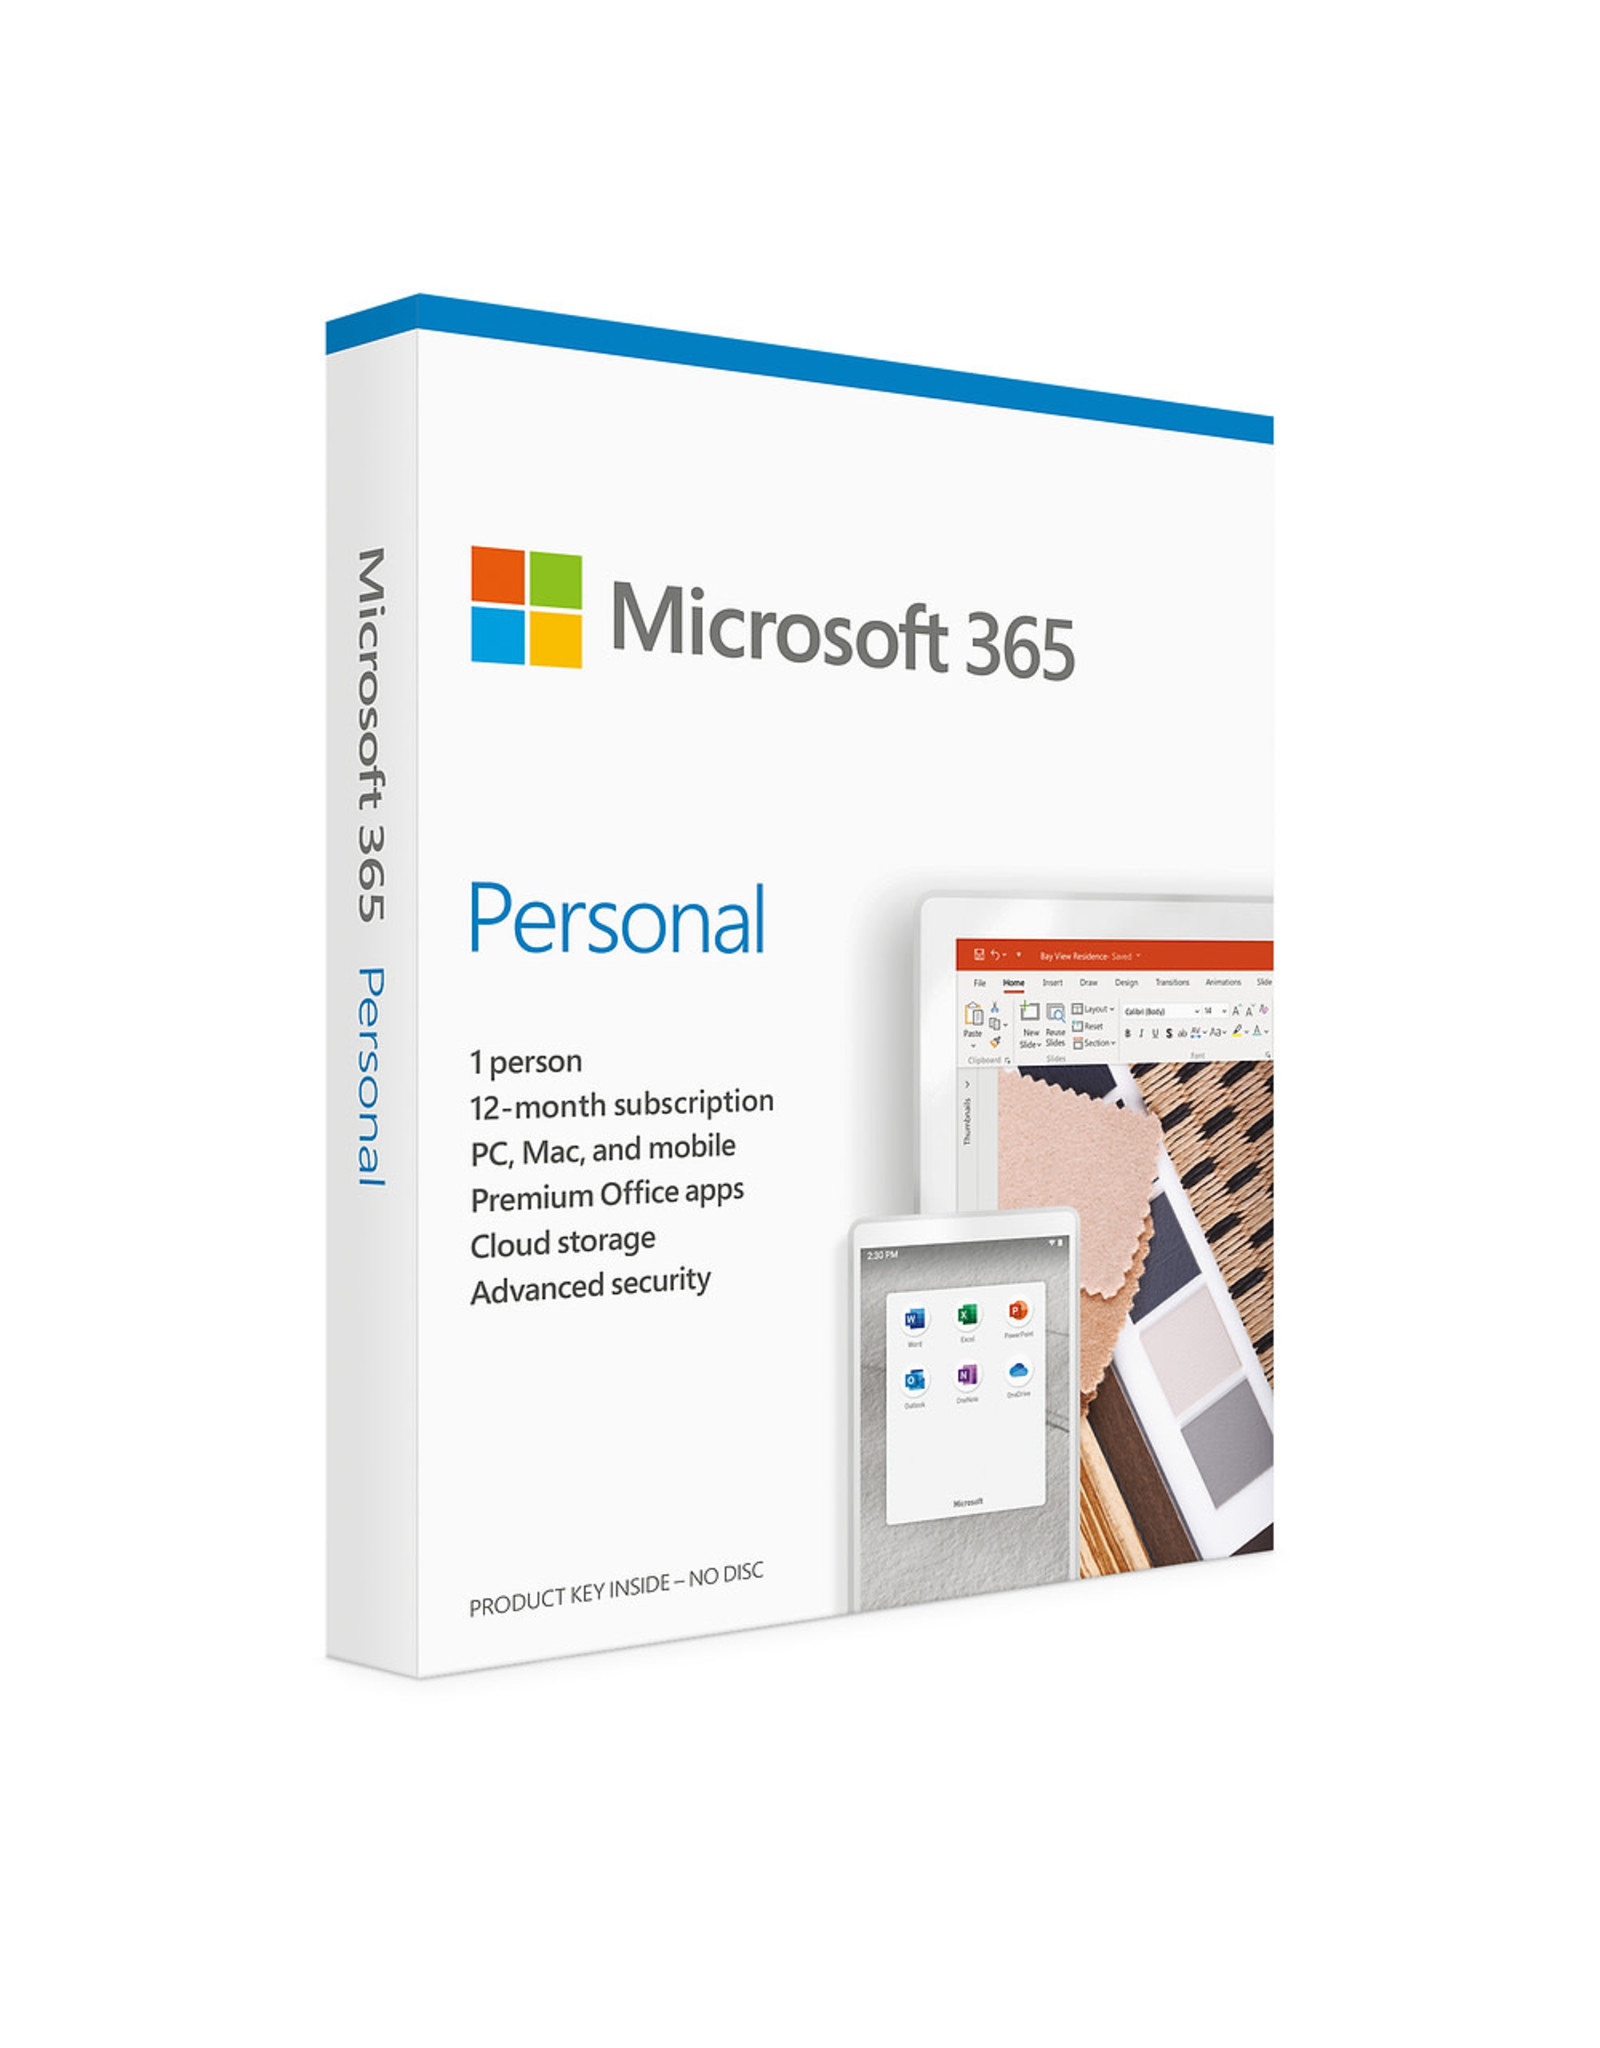 Microsoft Microsoft 365 Personal - Word, Excel, Powerpoint, Notes, Outlook - 1 peron - 1TB One Drive cloud storage